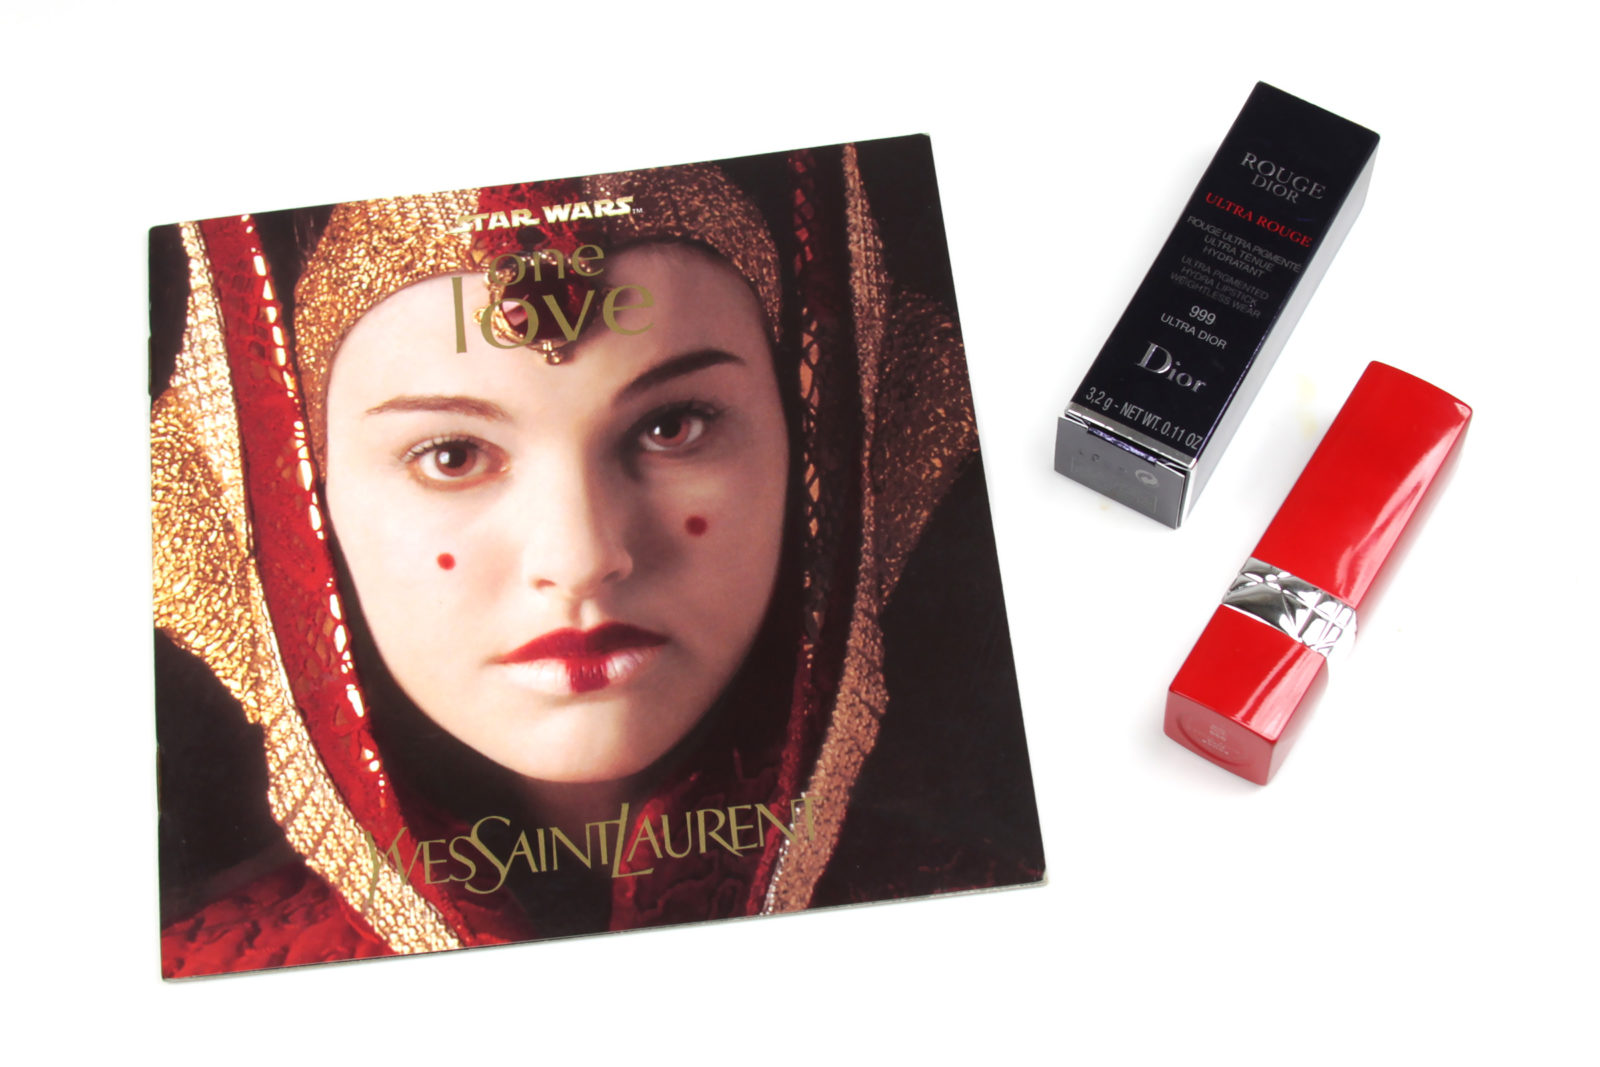 Yves Saint Laurent Star Wars One Love Booklet and Dior 999 Lipstick